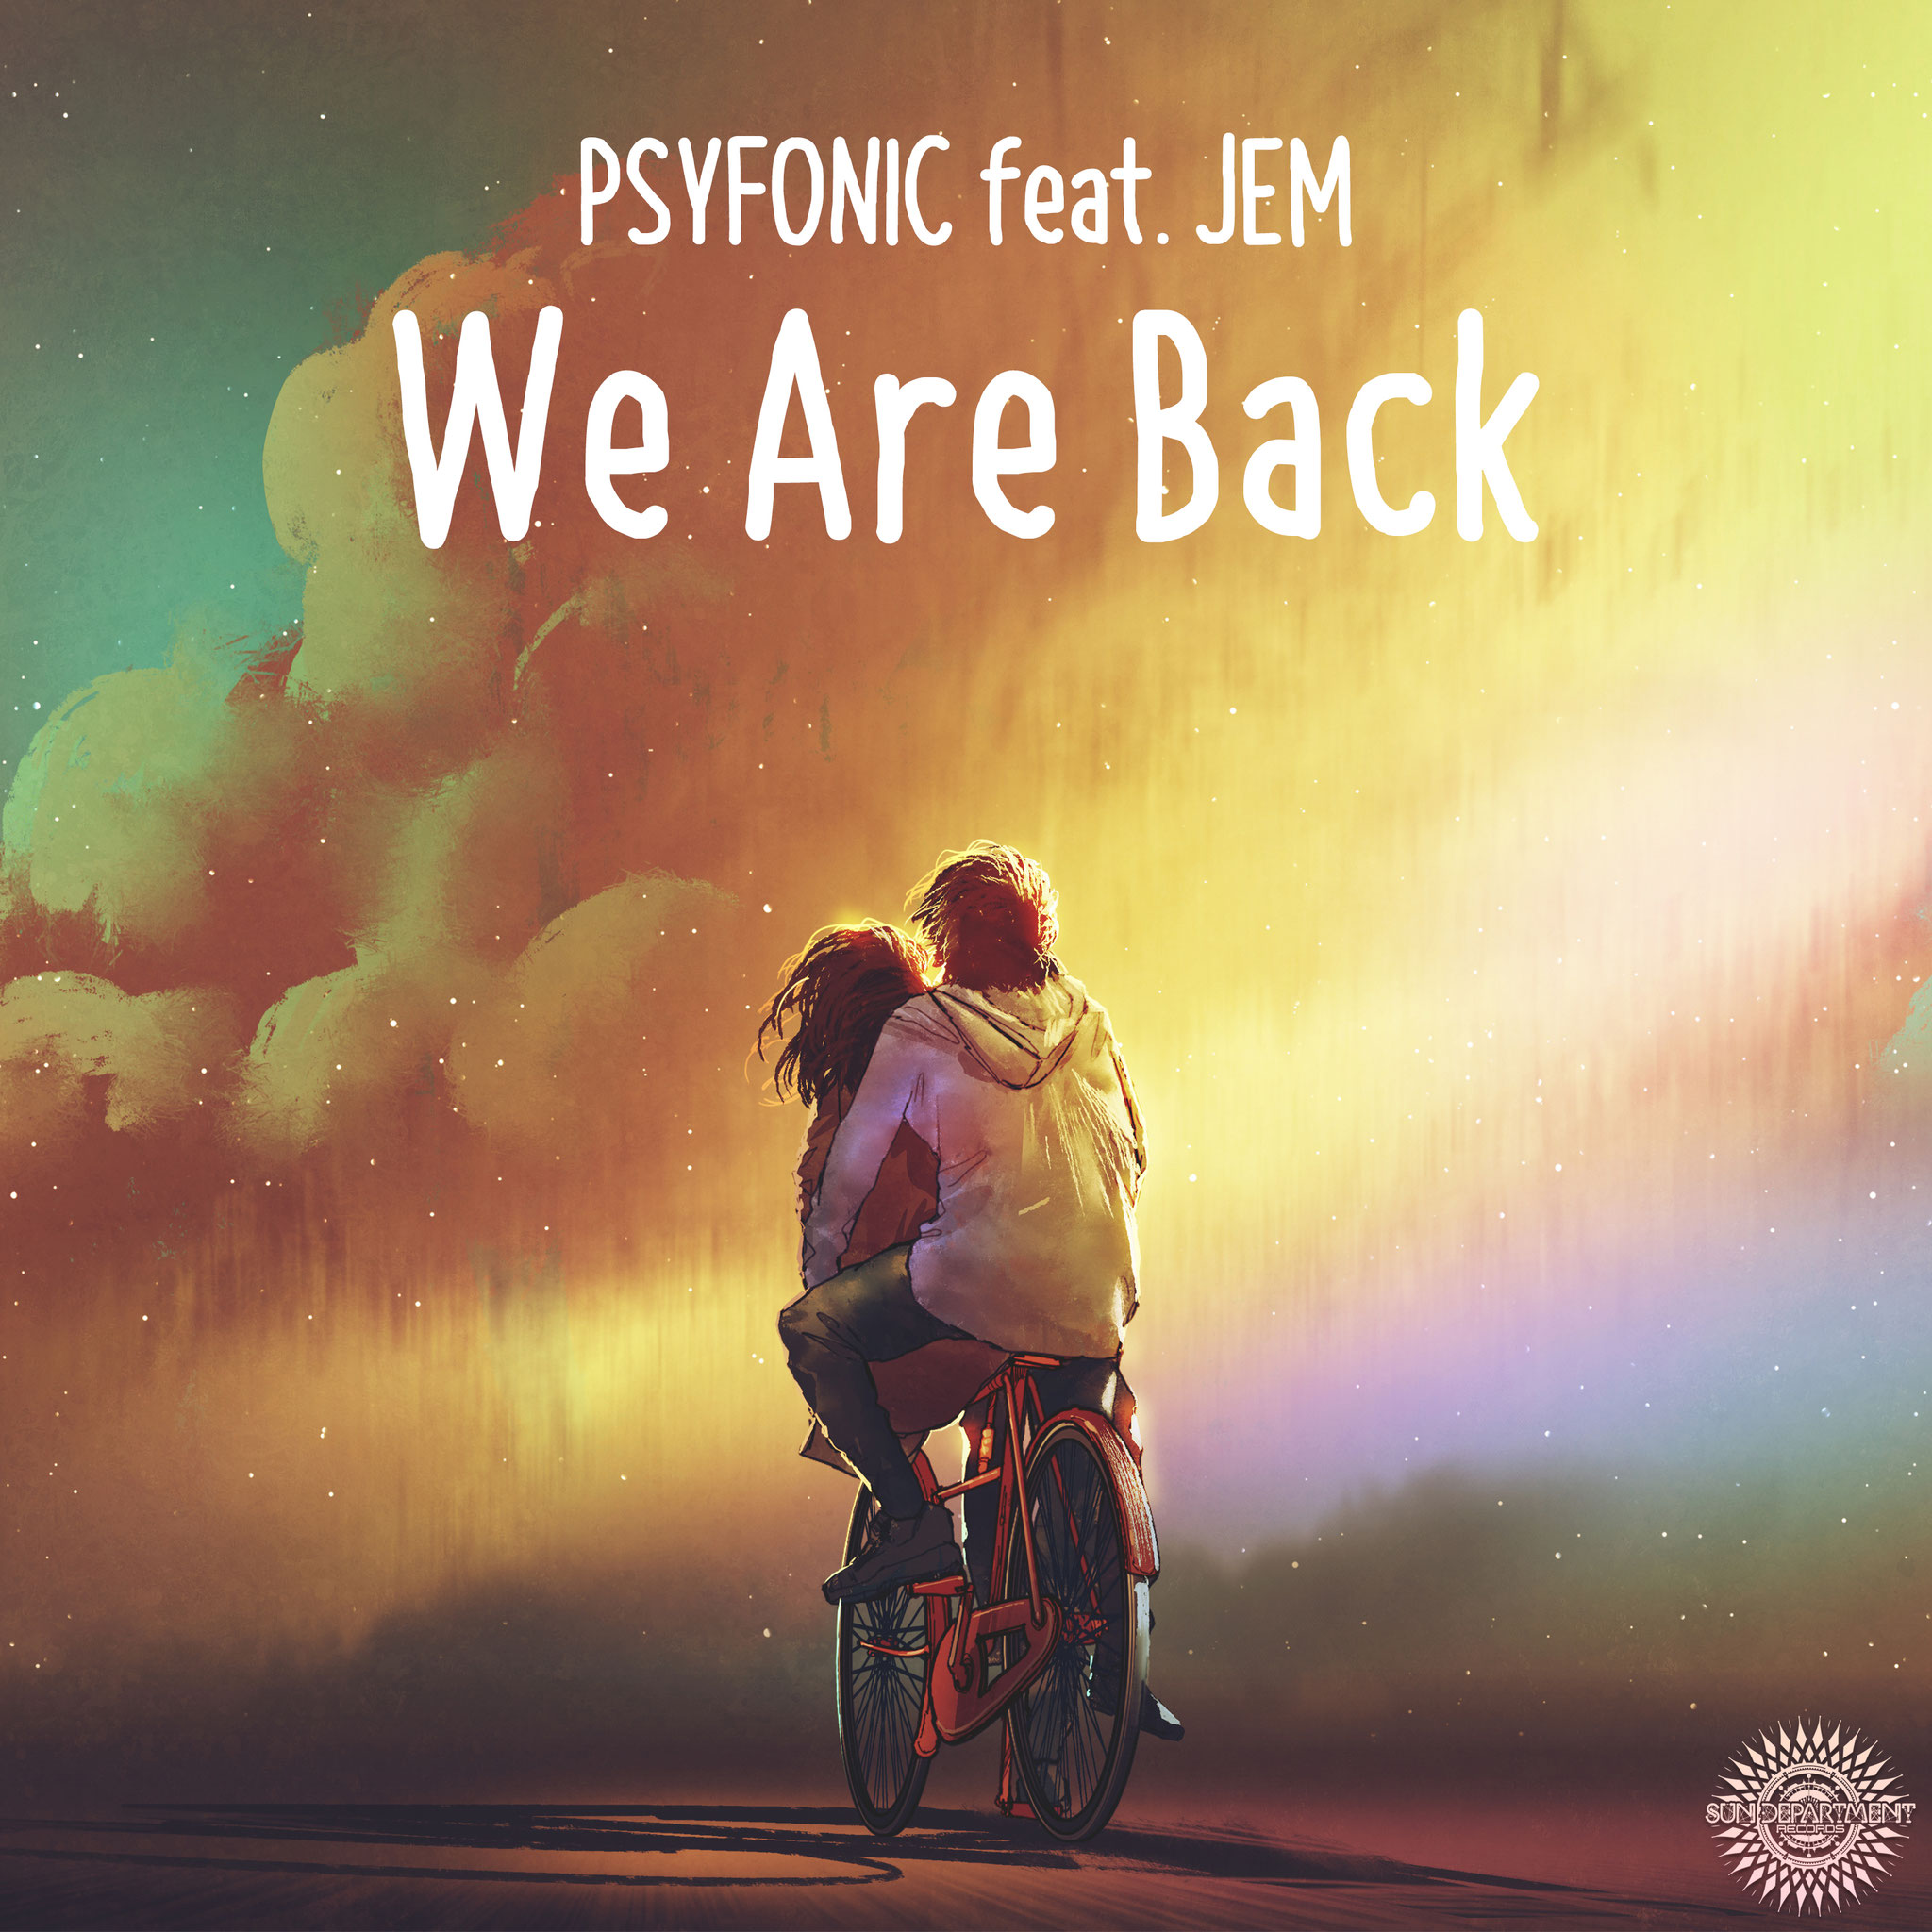 Psyfonic - We Are Back (feat. JEM)